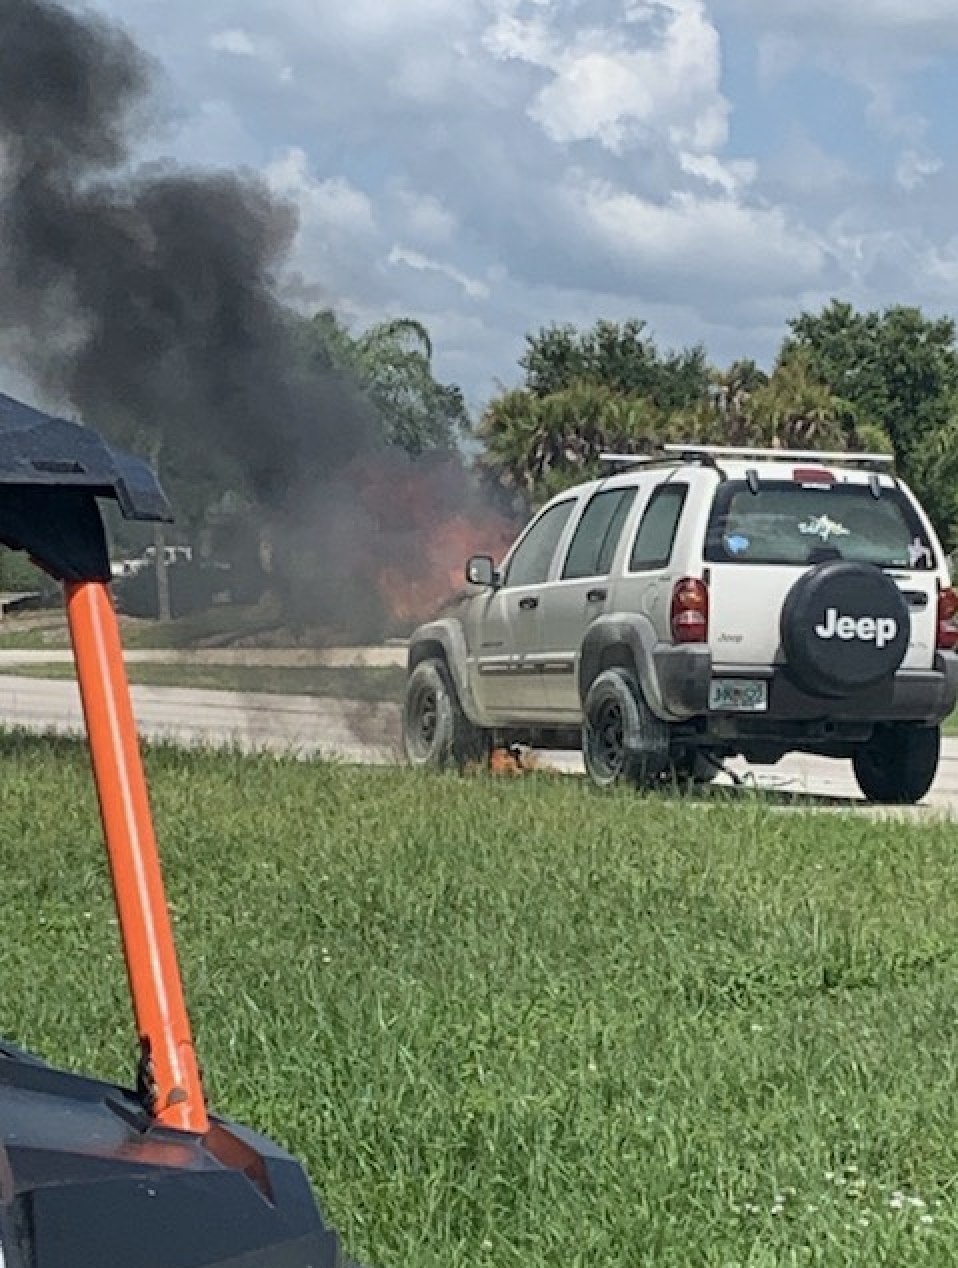 Two teens' car exploded, but their bible survived the fire unscathed (Credit: Sevyn Shock)